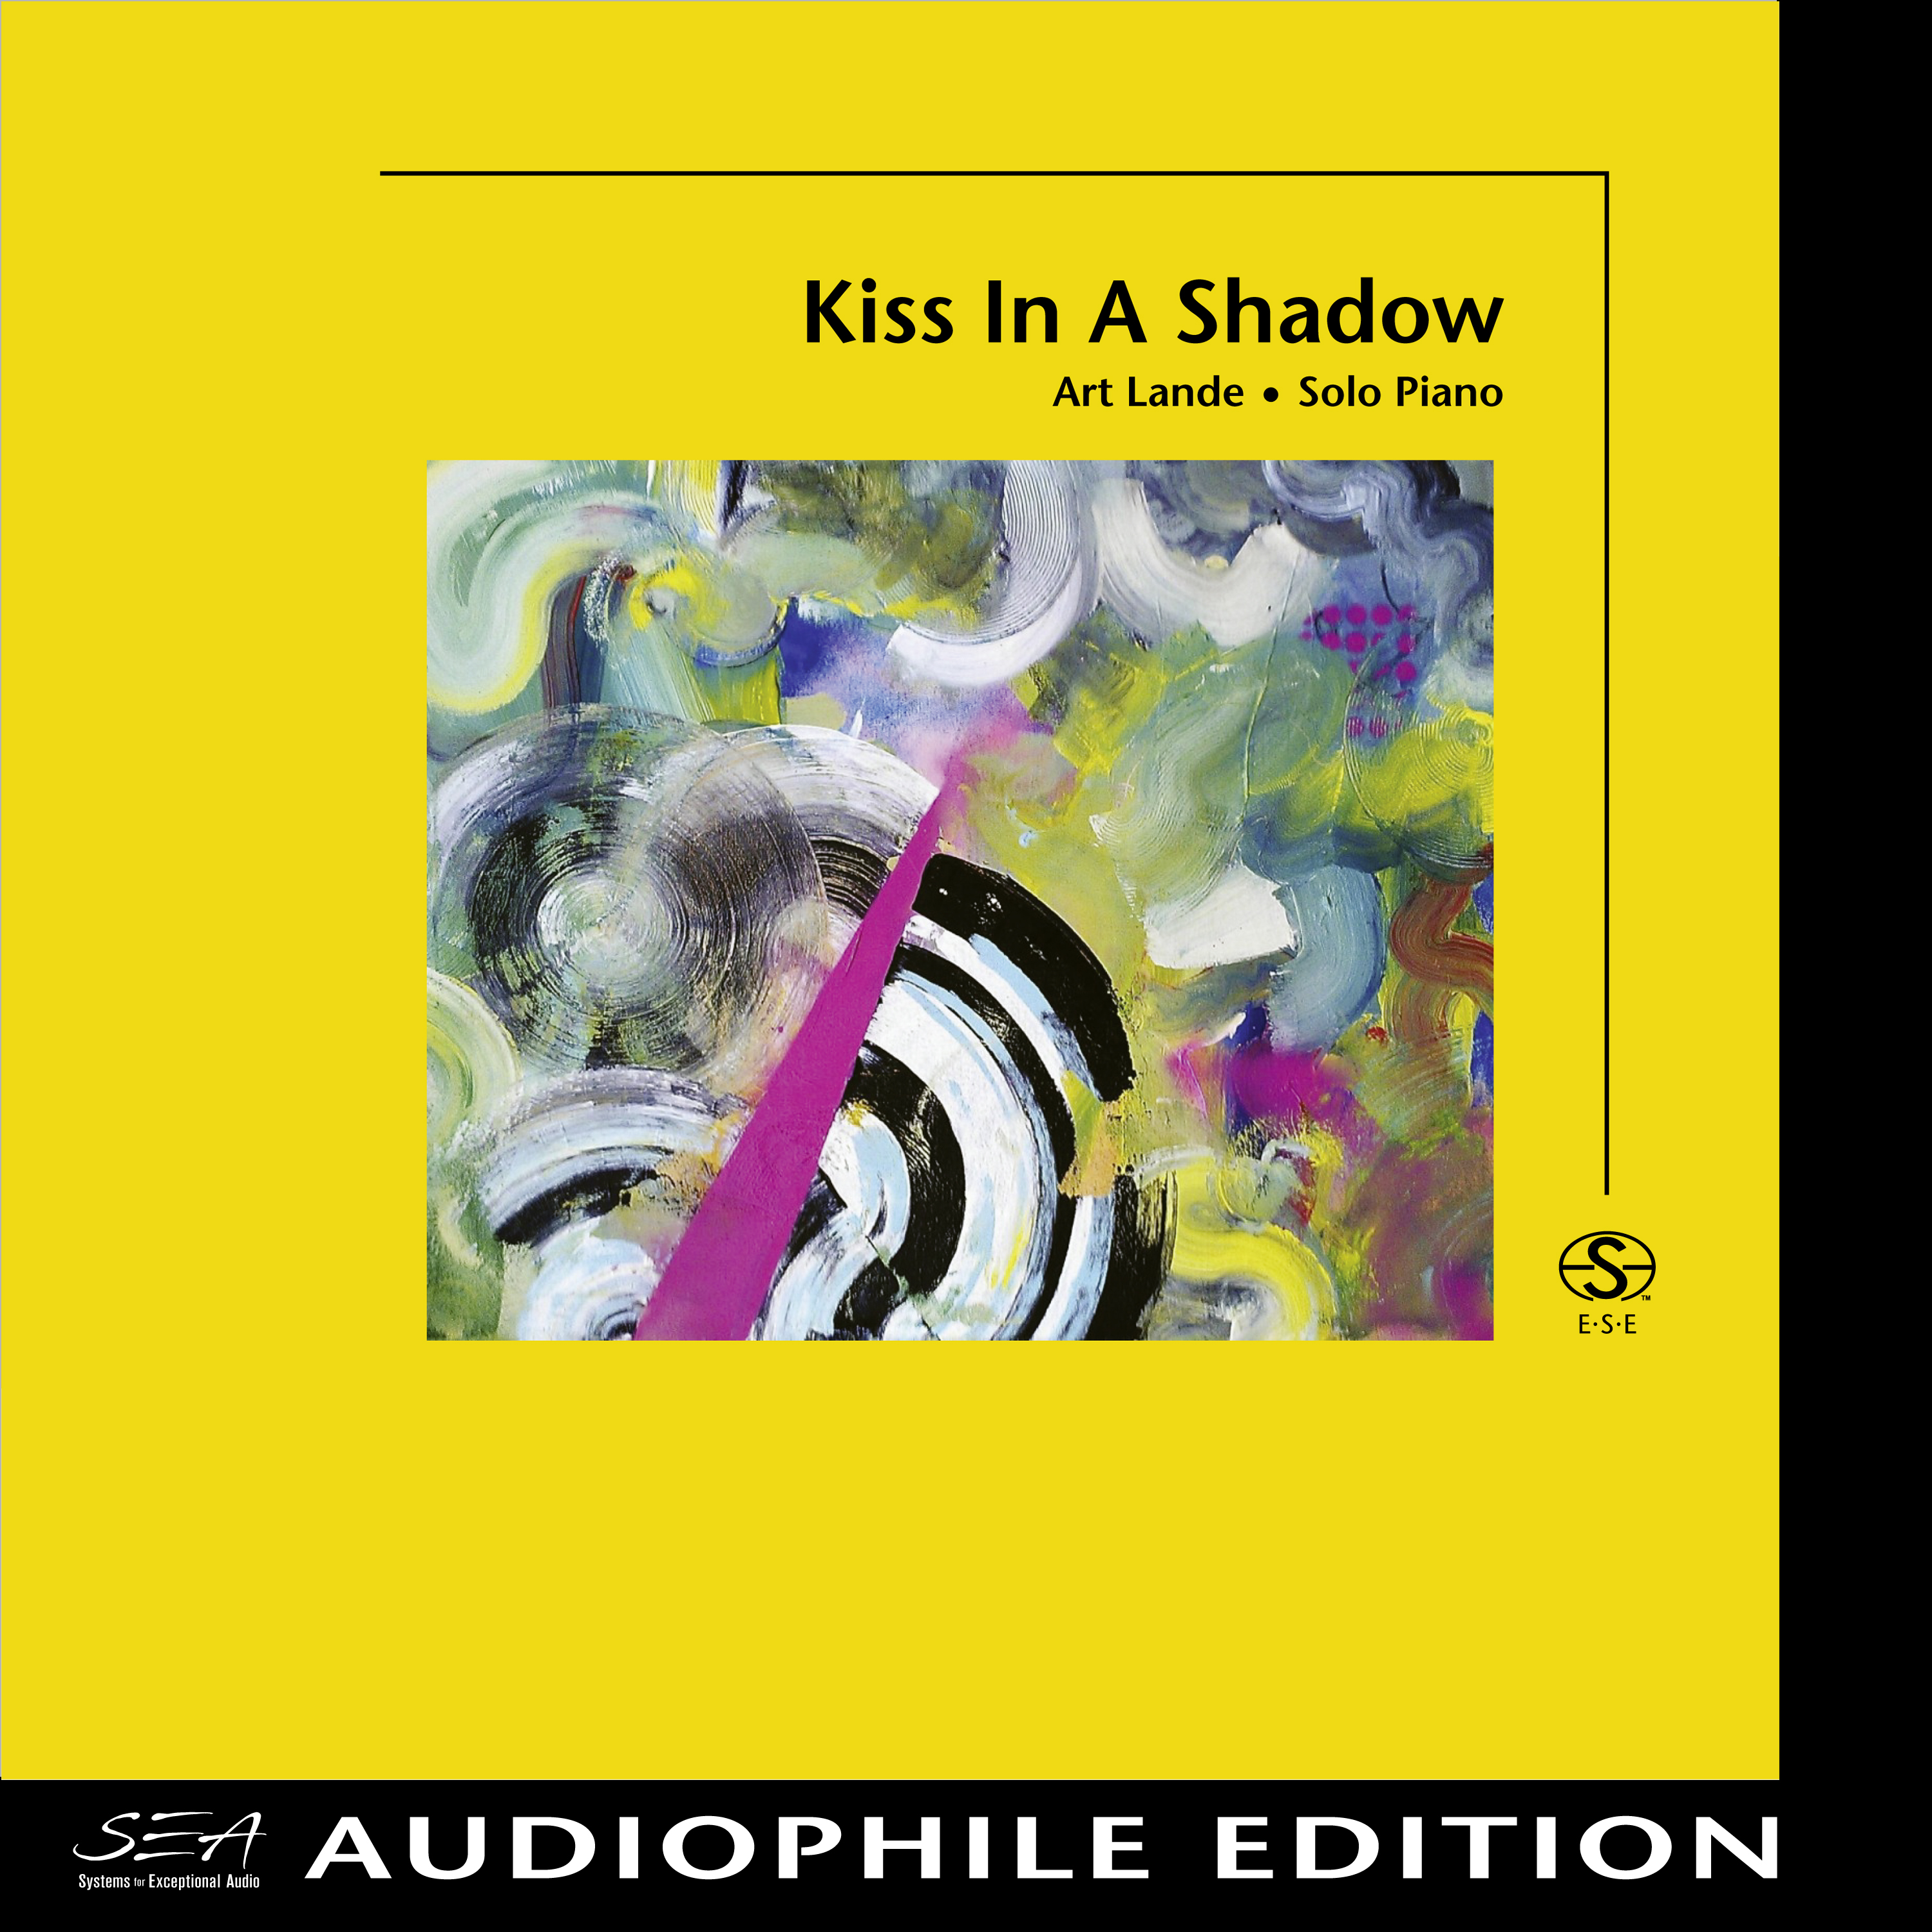 Art Lande - Kiss In A Shadow - Cover Image